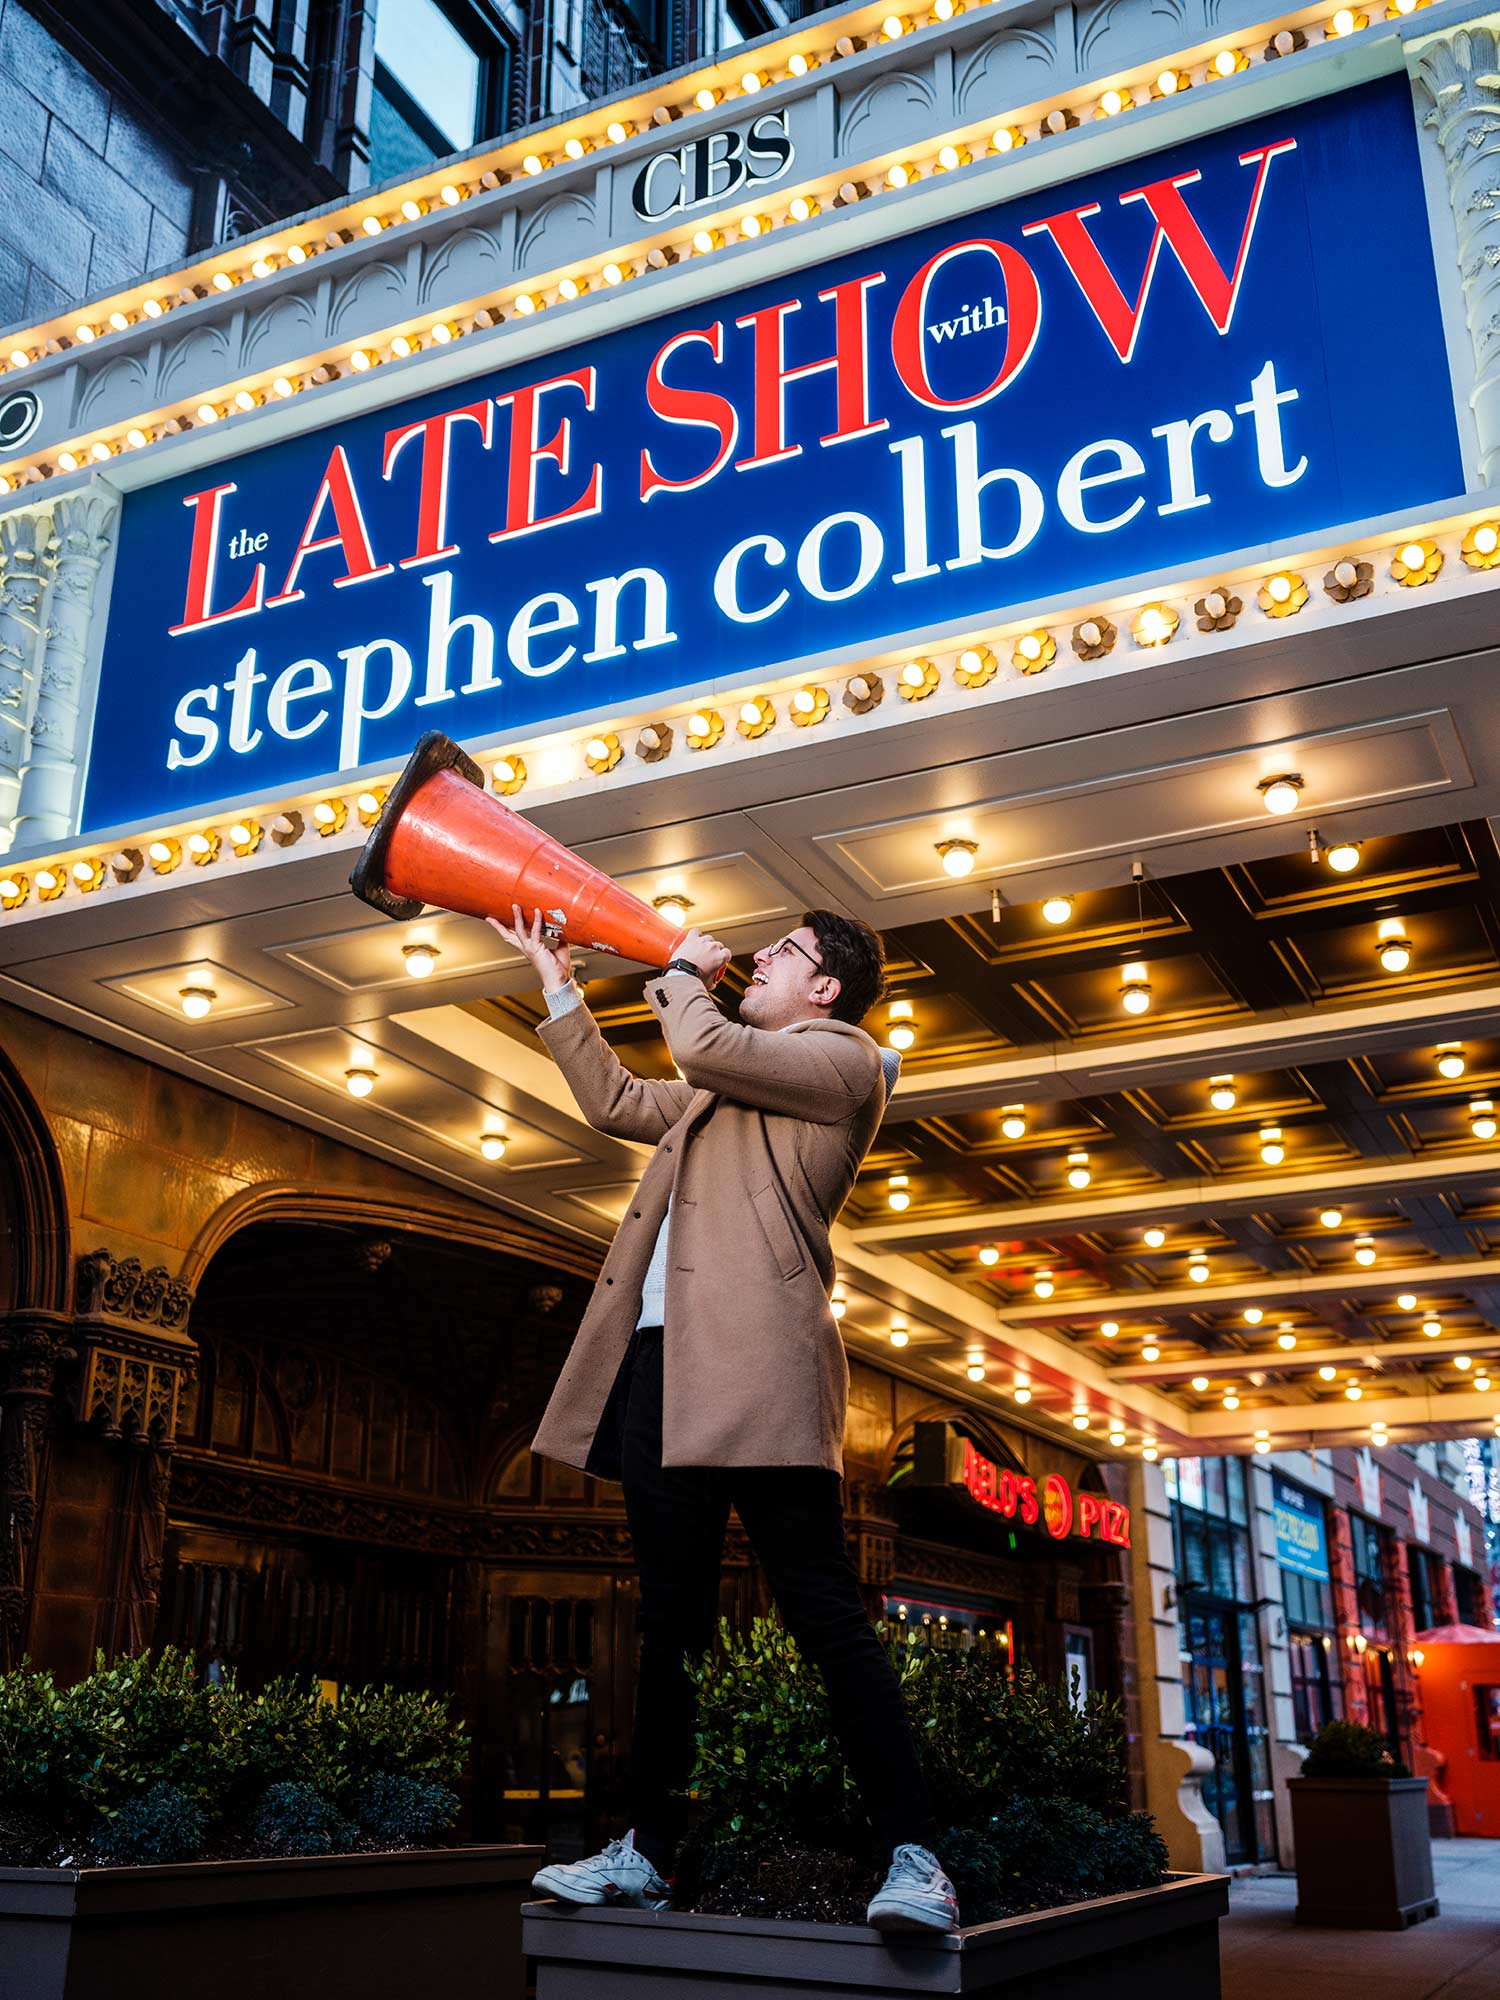 Felipe Torres Medina, a staff writer for The Late Show with Stephen Colbert, poses outside of the Late Show sign and yells into an orange traffic cone as if it were a megaphone.